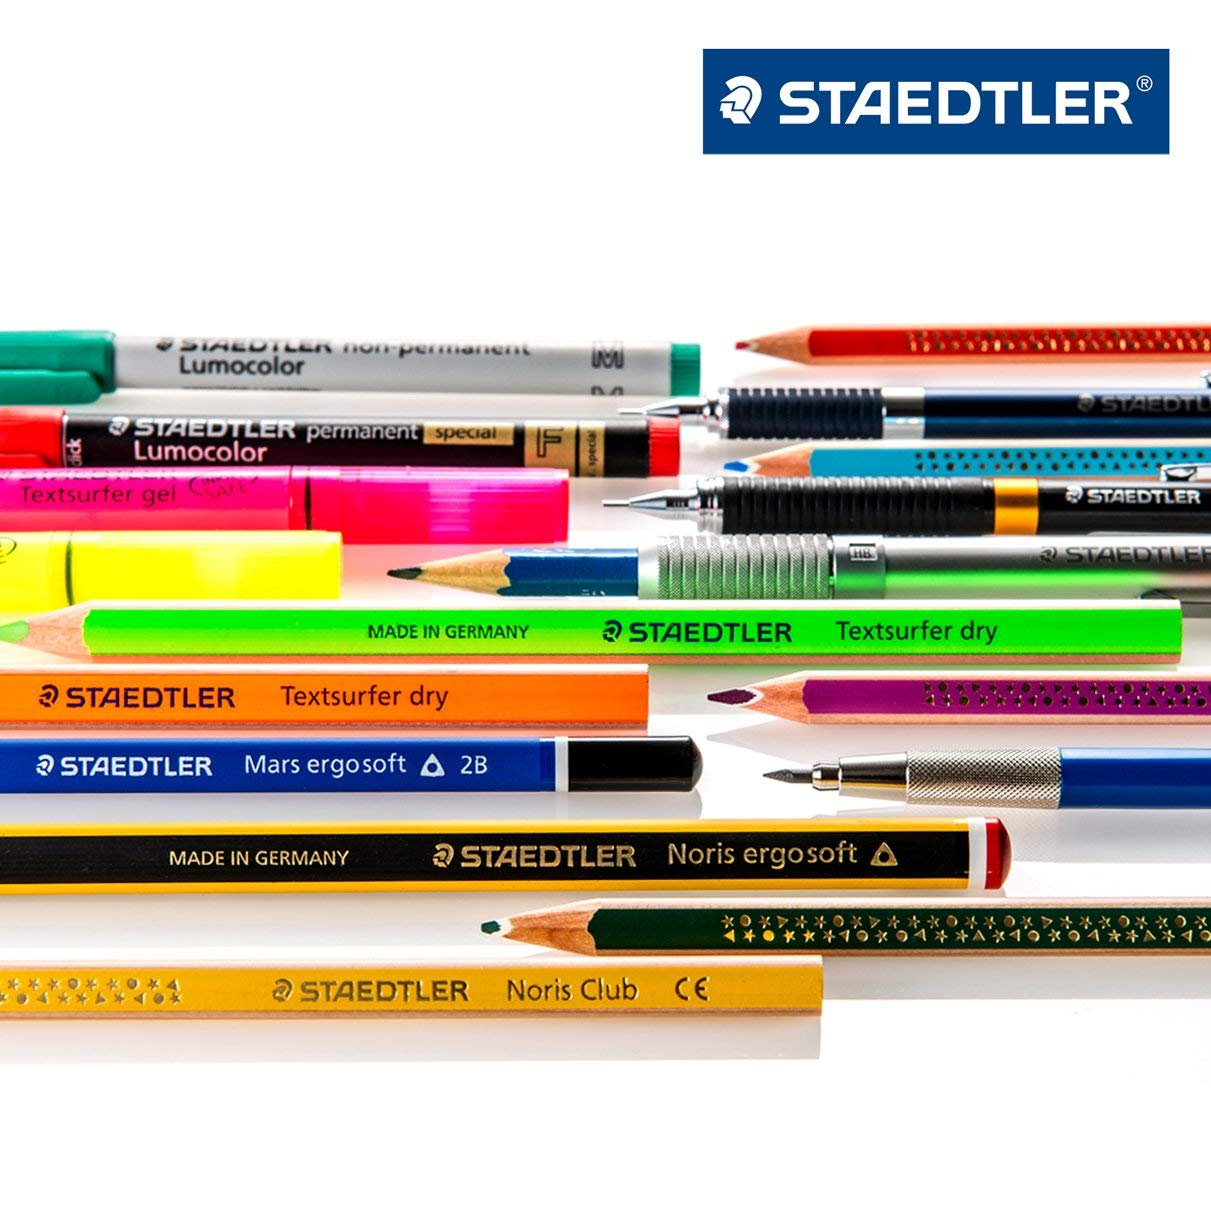 Staedtler 2.0mm Mechanical Pencil Night Blue Series (925 35-20)